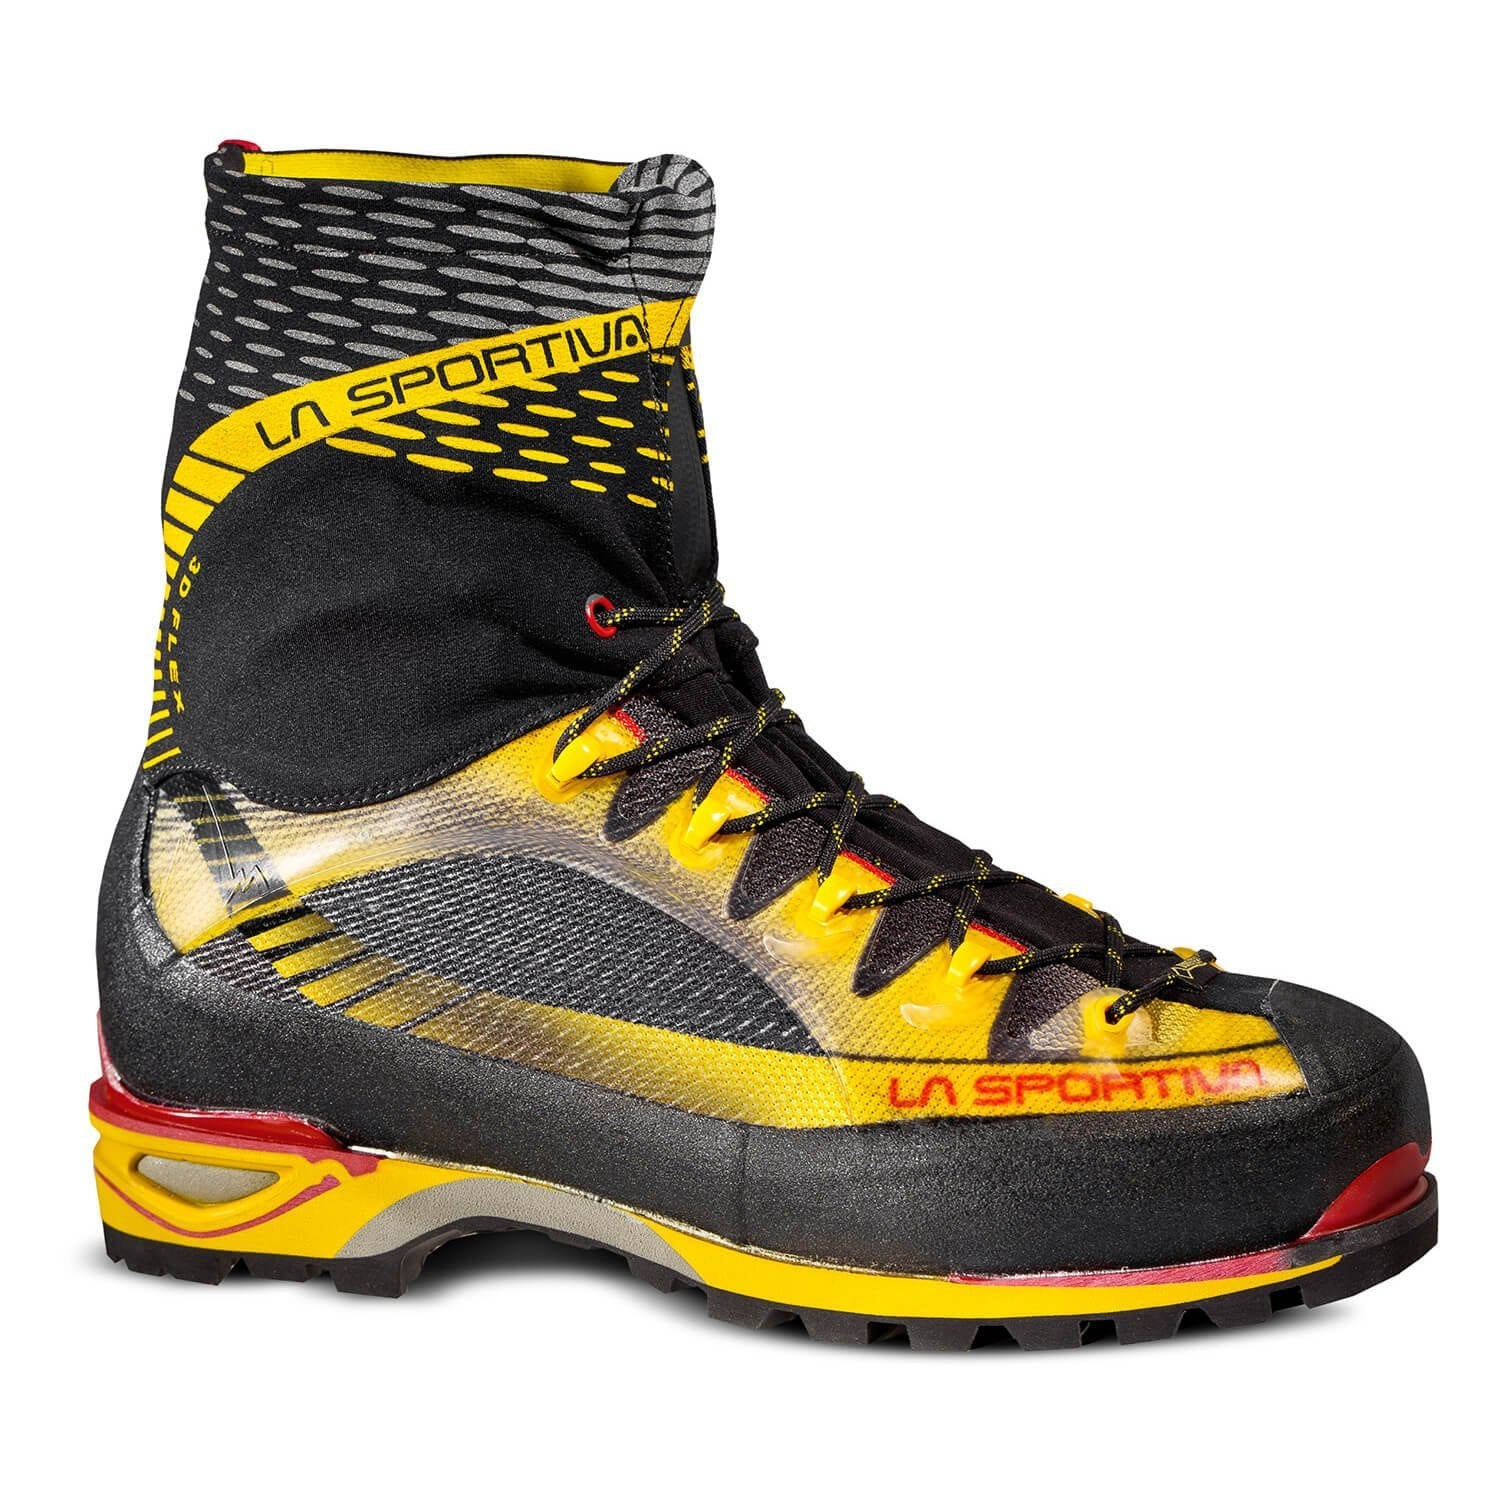 La Sportiva Trango Ice Cube Mountaineering Boot, in black, yellow and red colours